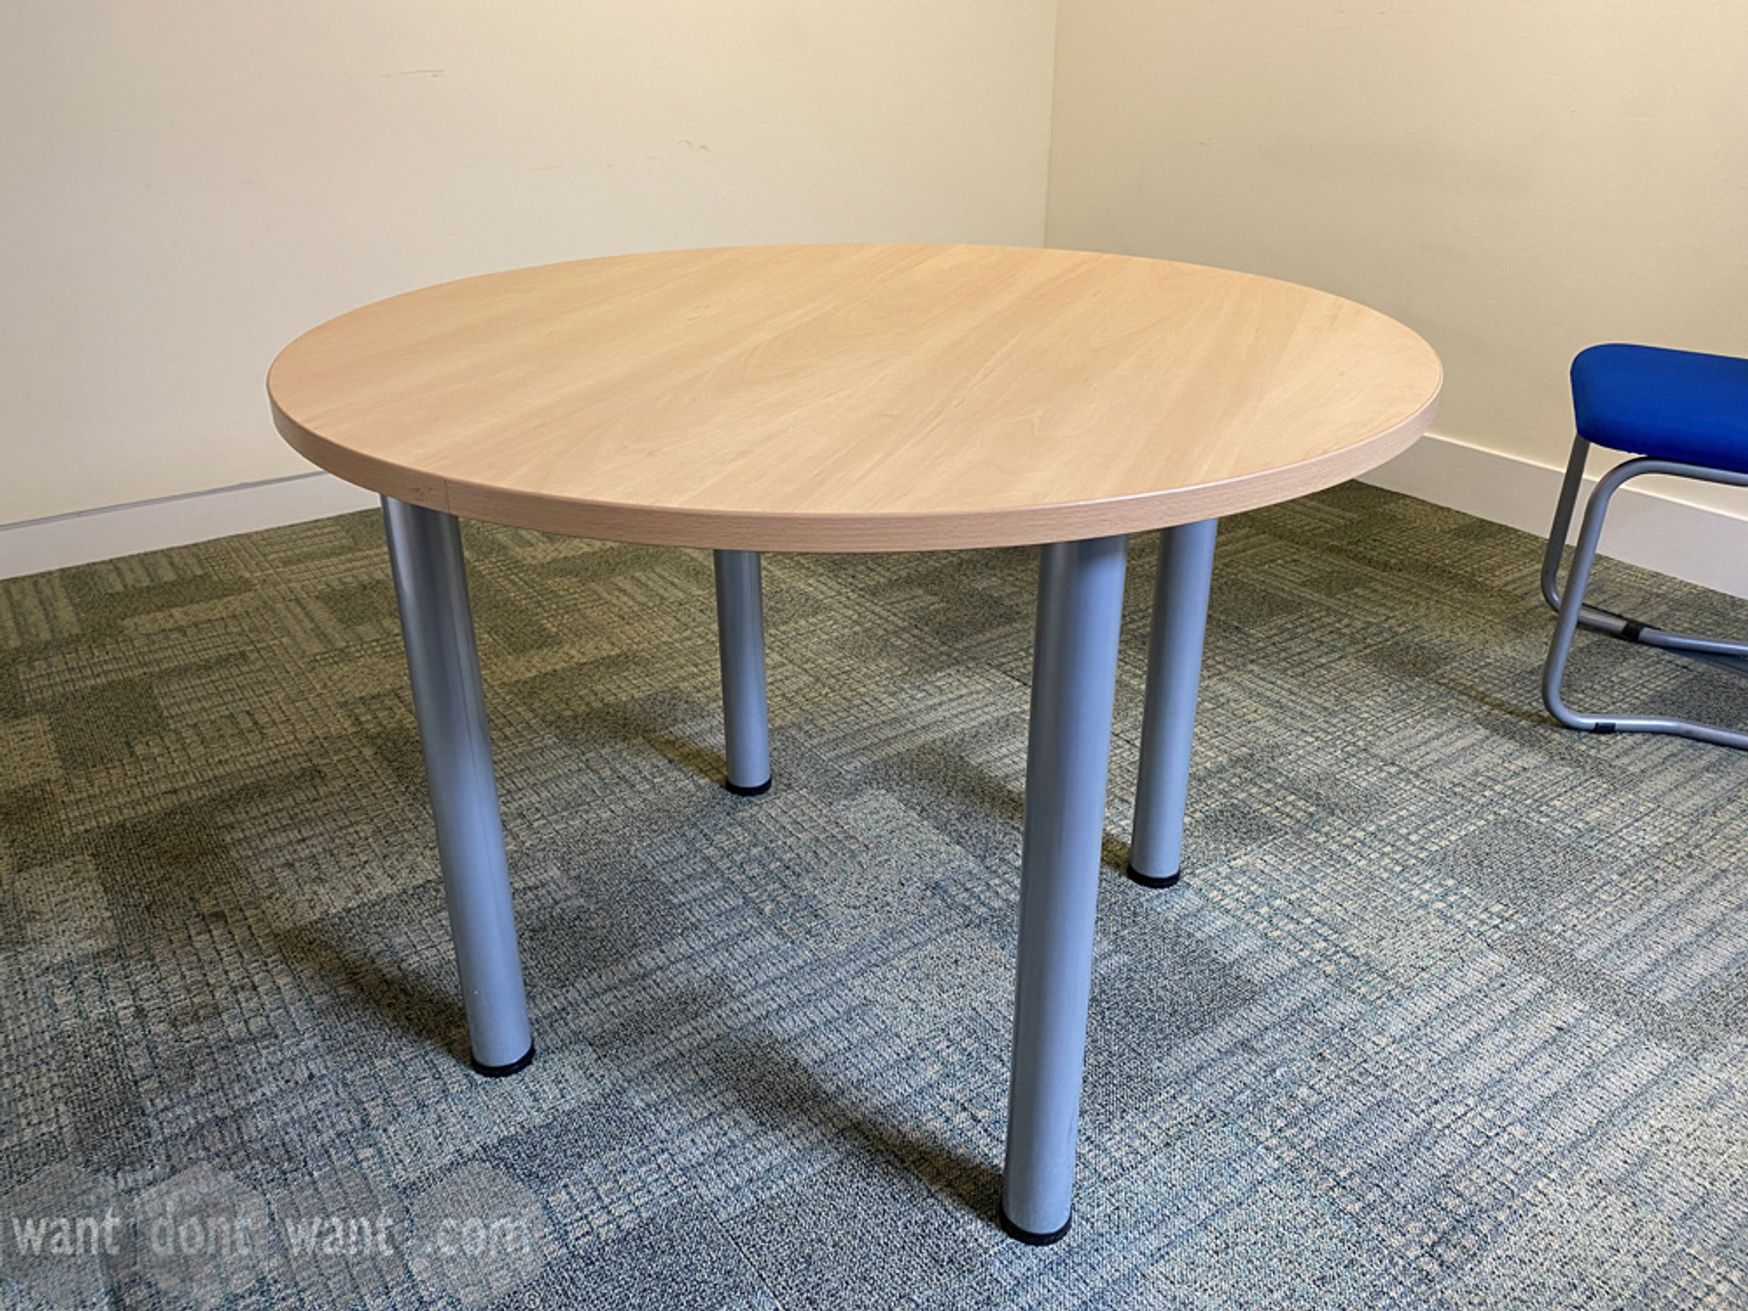 Used meeting table with oak top and grey tubular legs (1000mm dia)